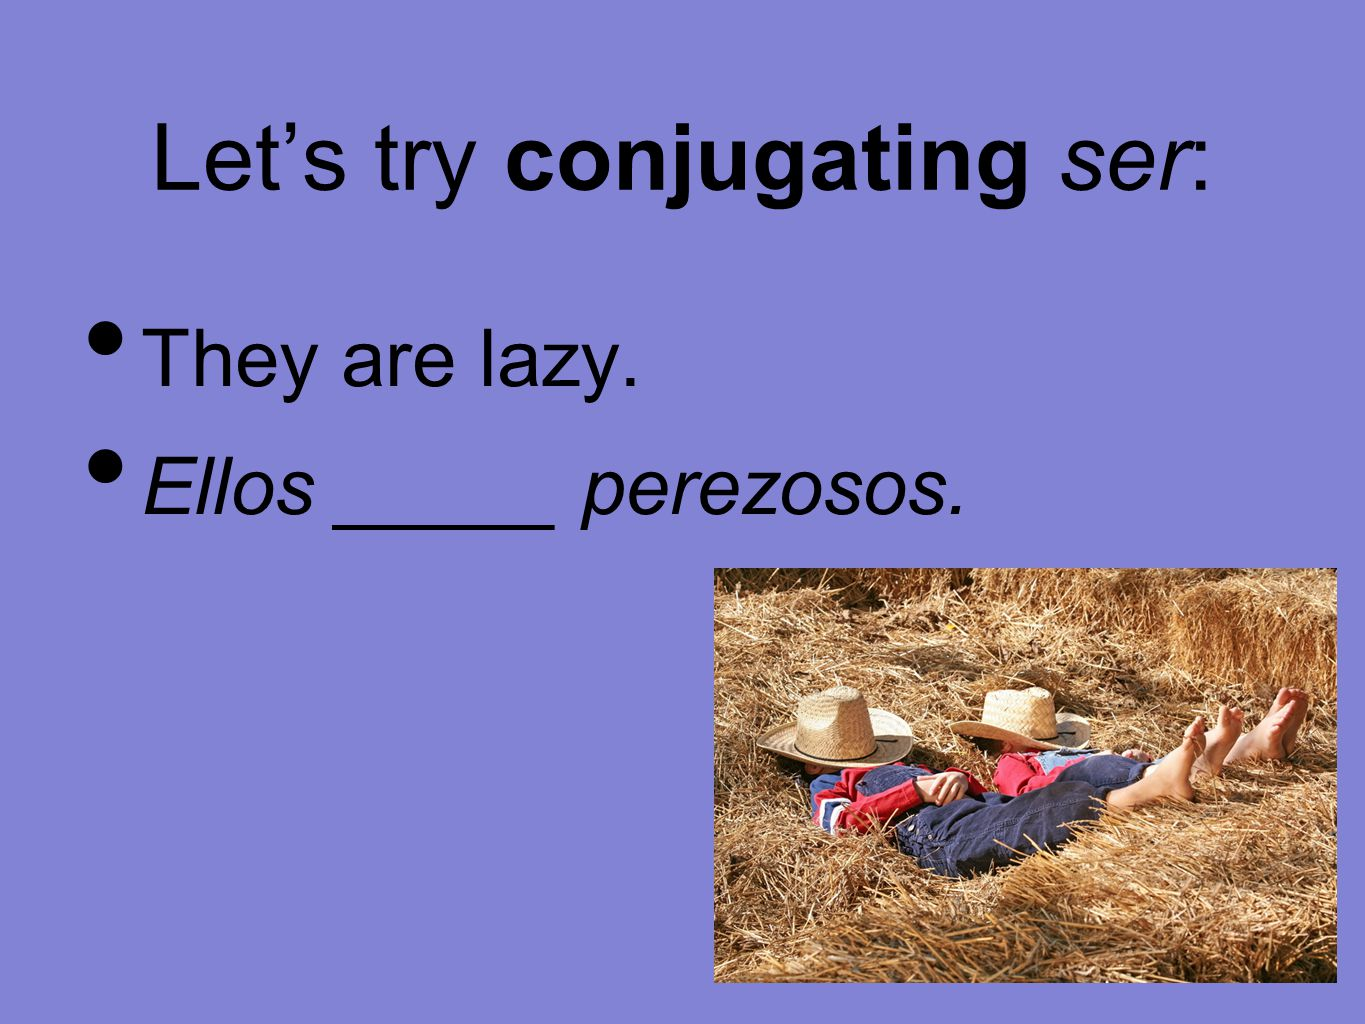 Let's try conjugating ser: They are lazy. Ellos _____ perezosos.